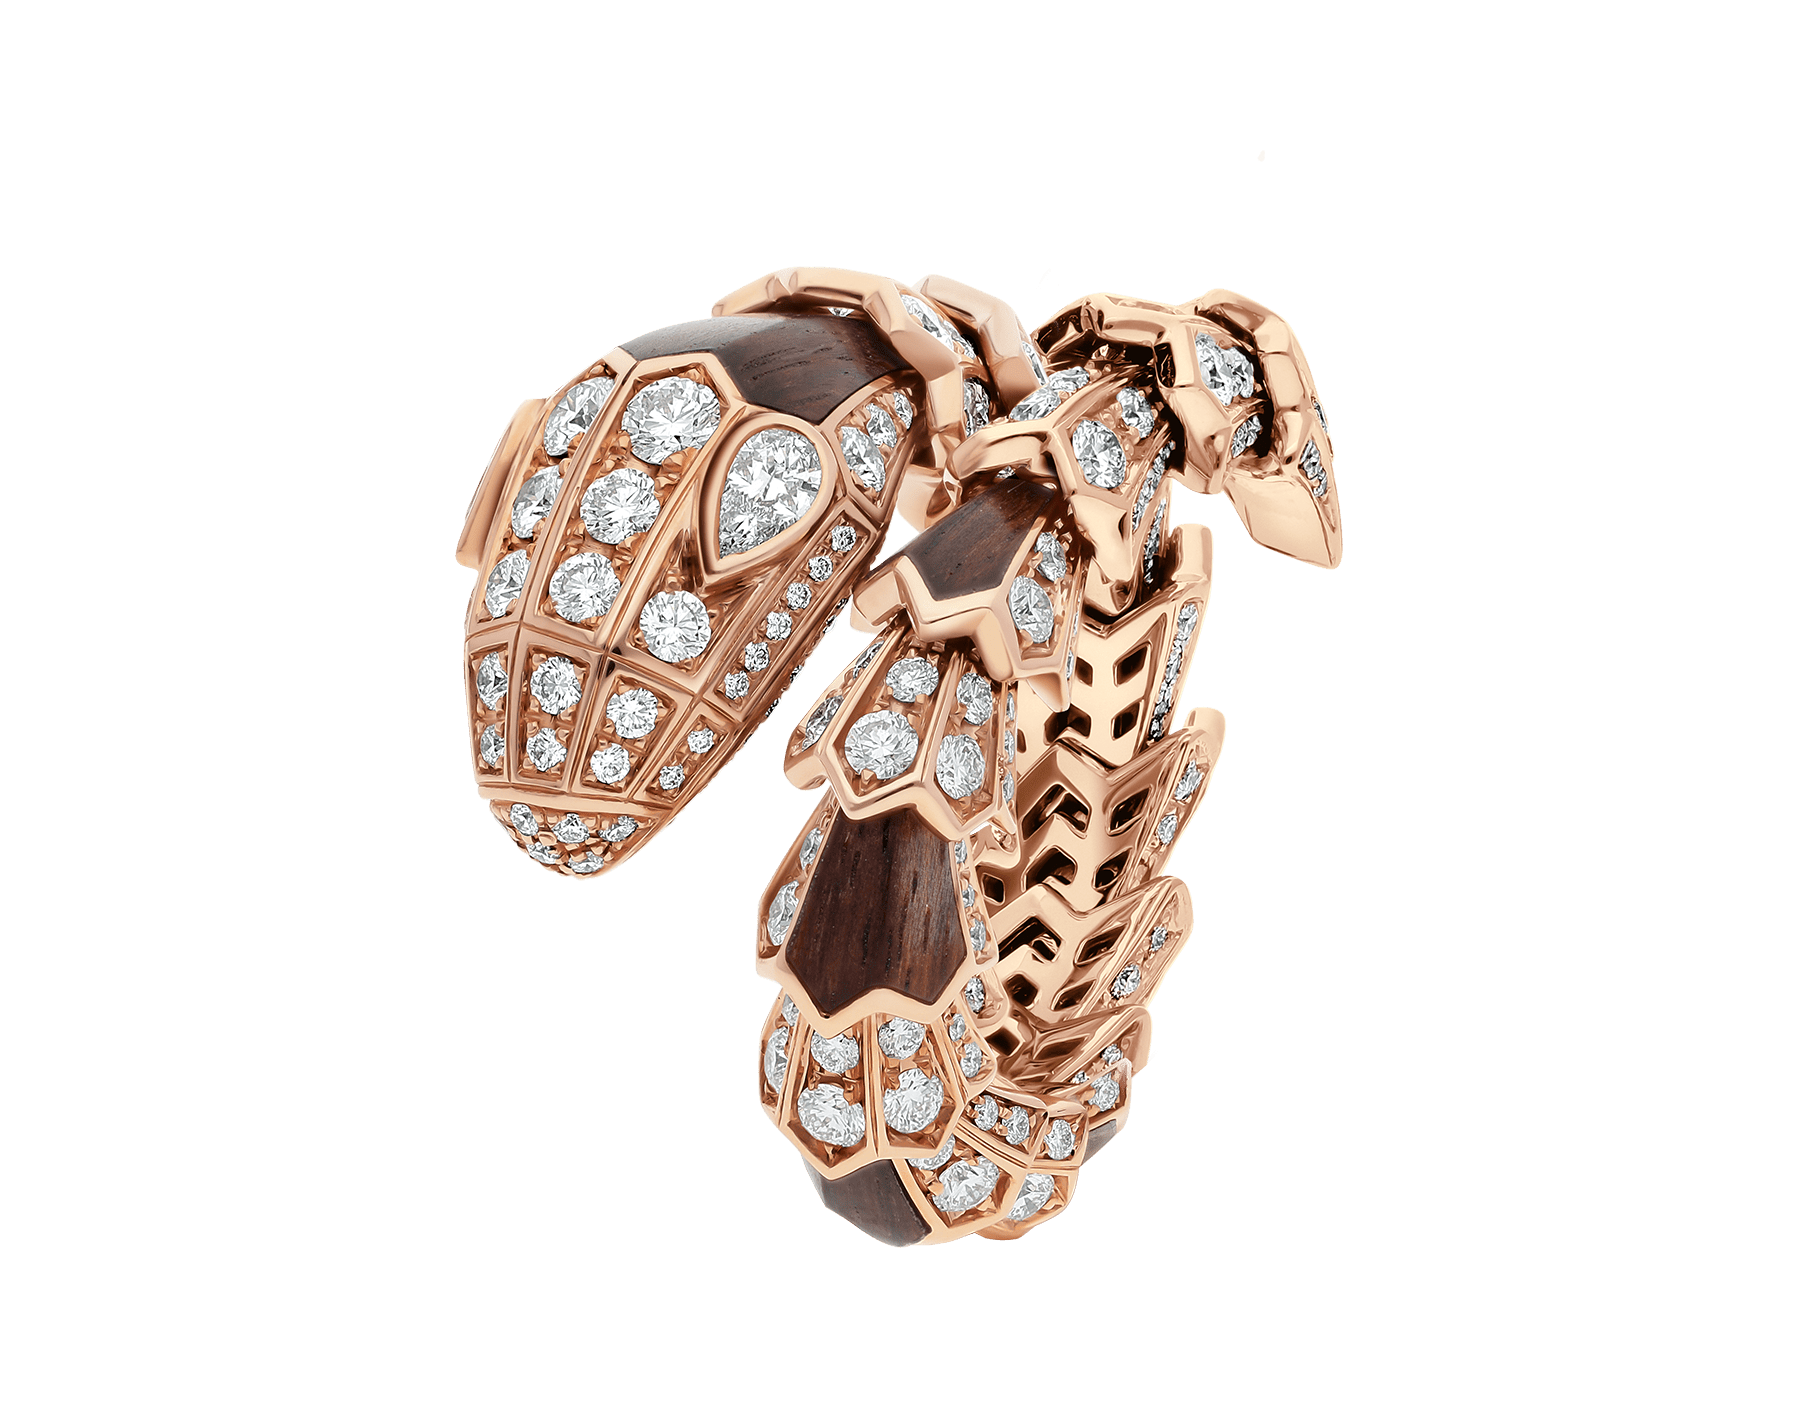 Serpenti ring in 18 kt rose gold, set with wood elements and pavé diamonds. AN857756 image 1